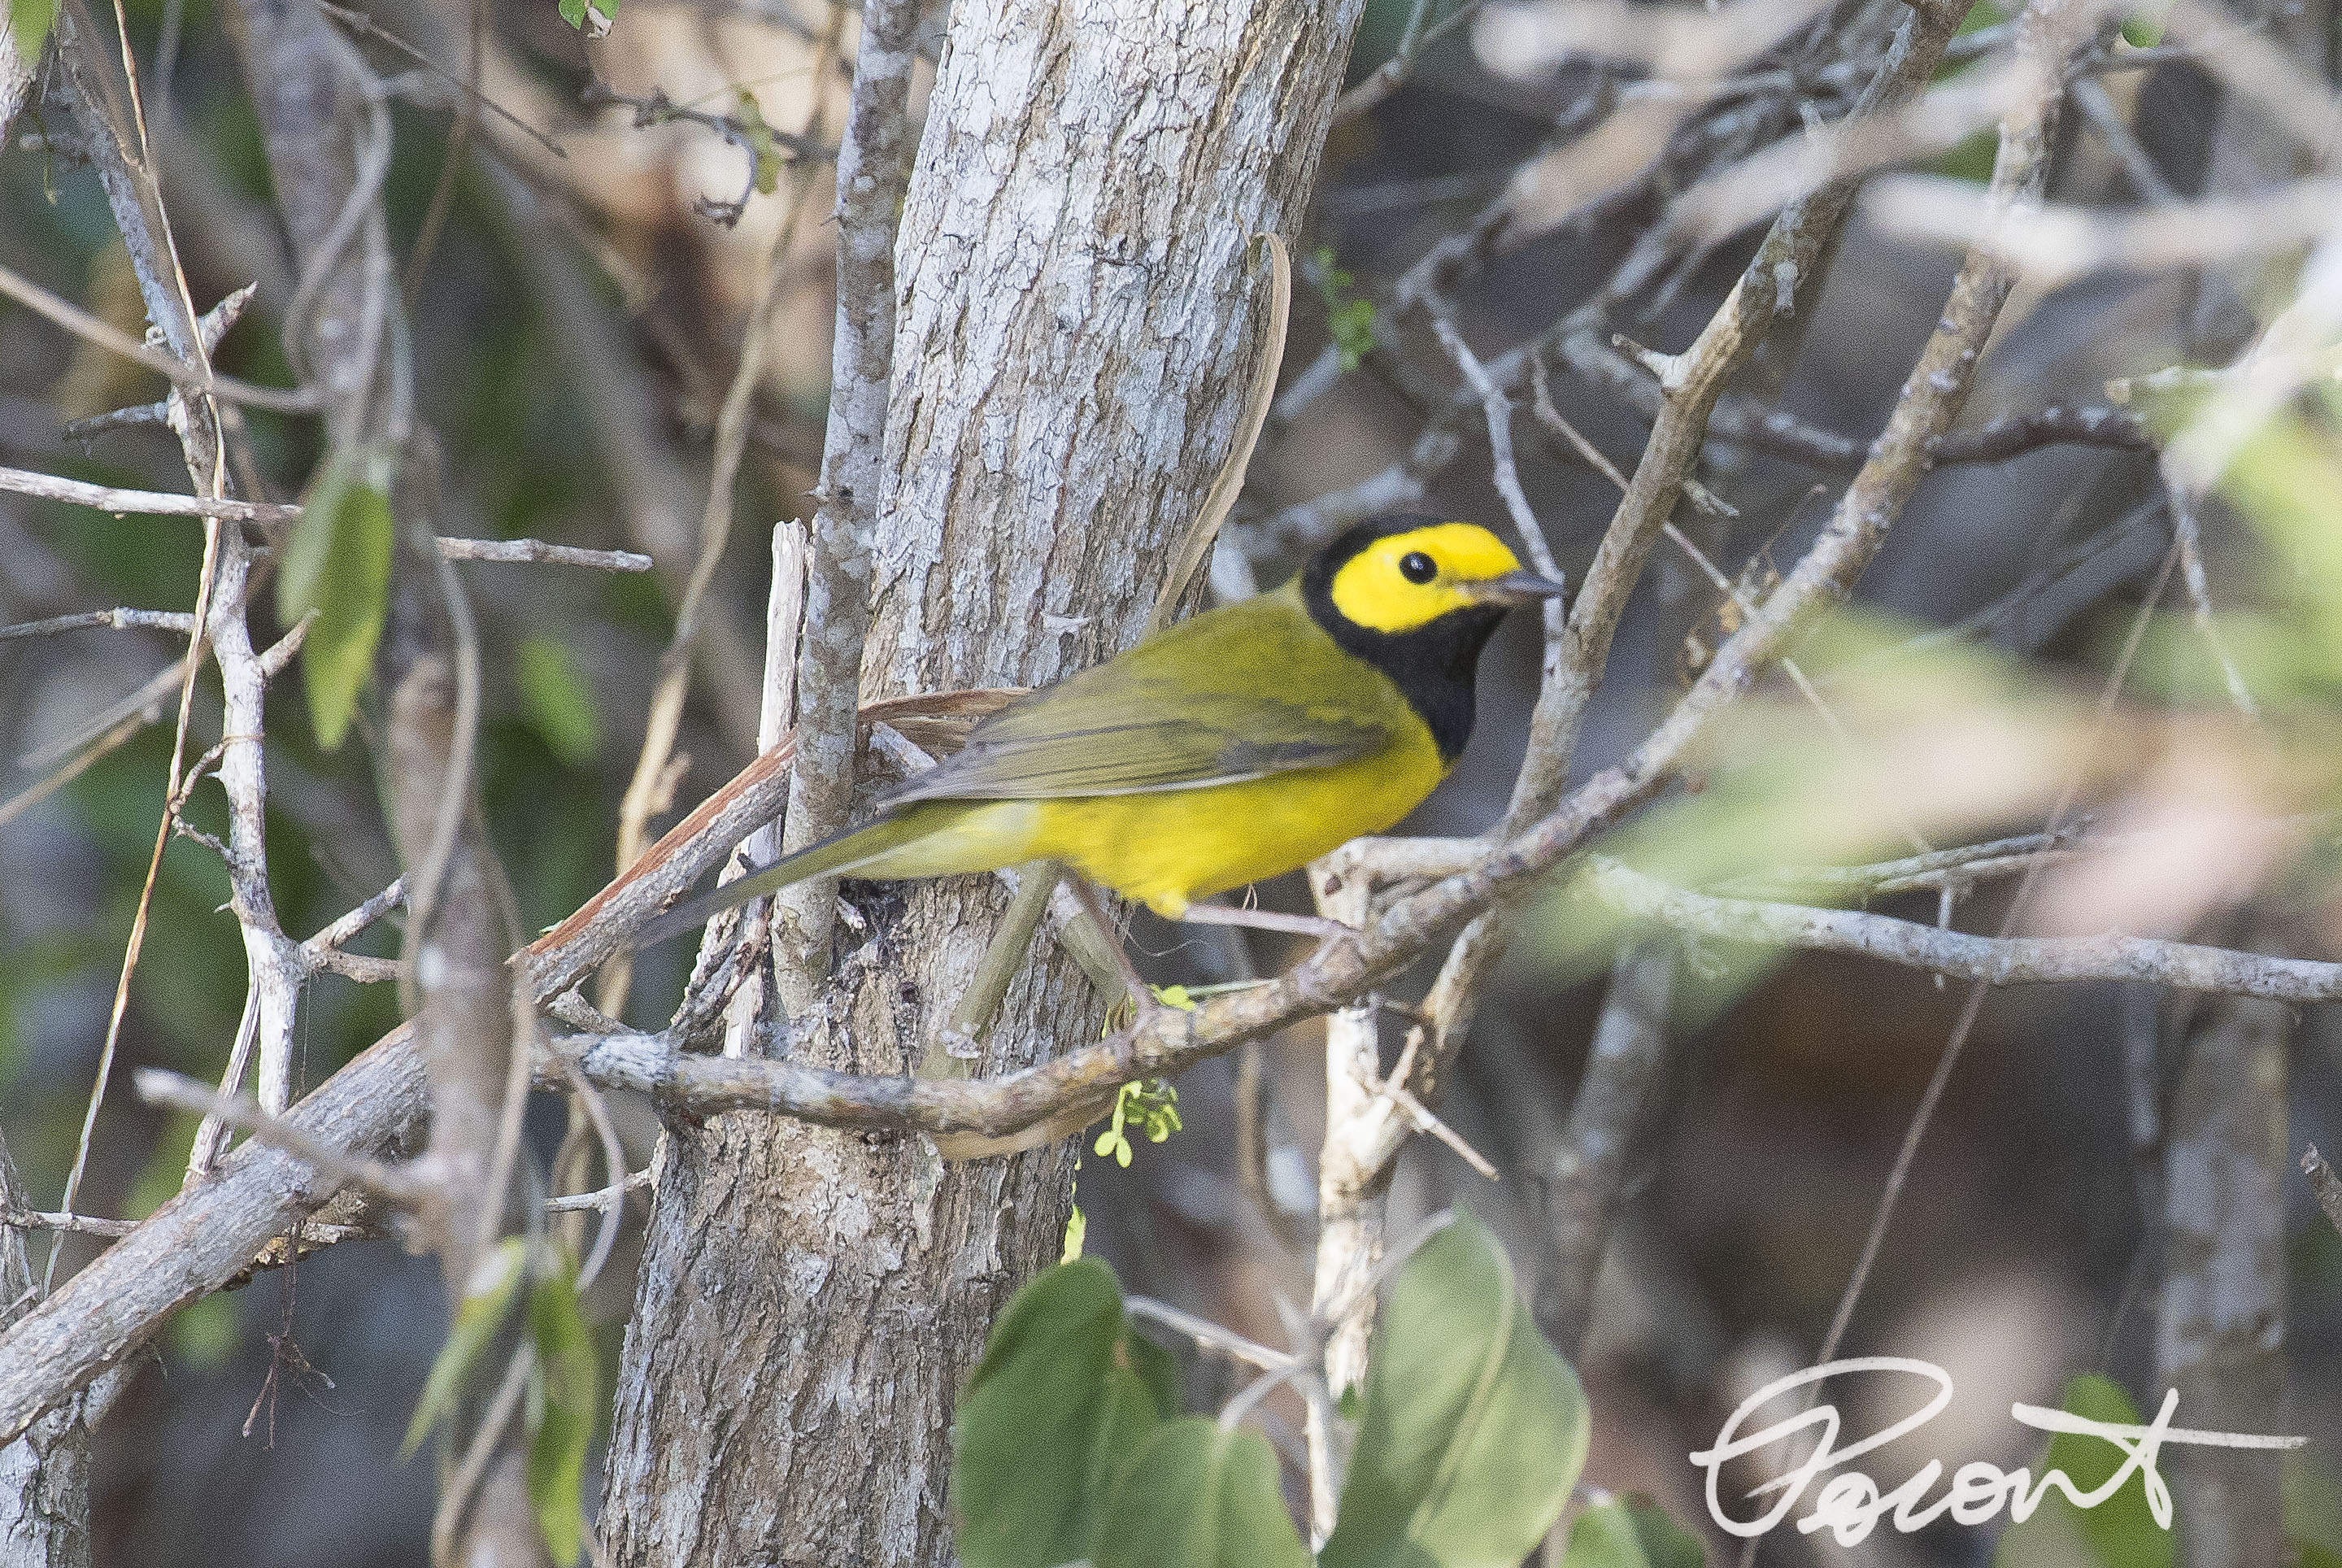 Hooded Warbler - soft image but only shot I could get of the several that I saw